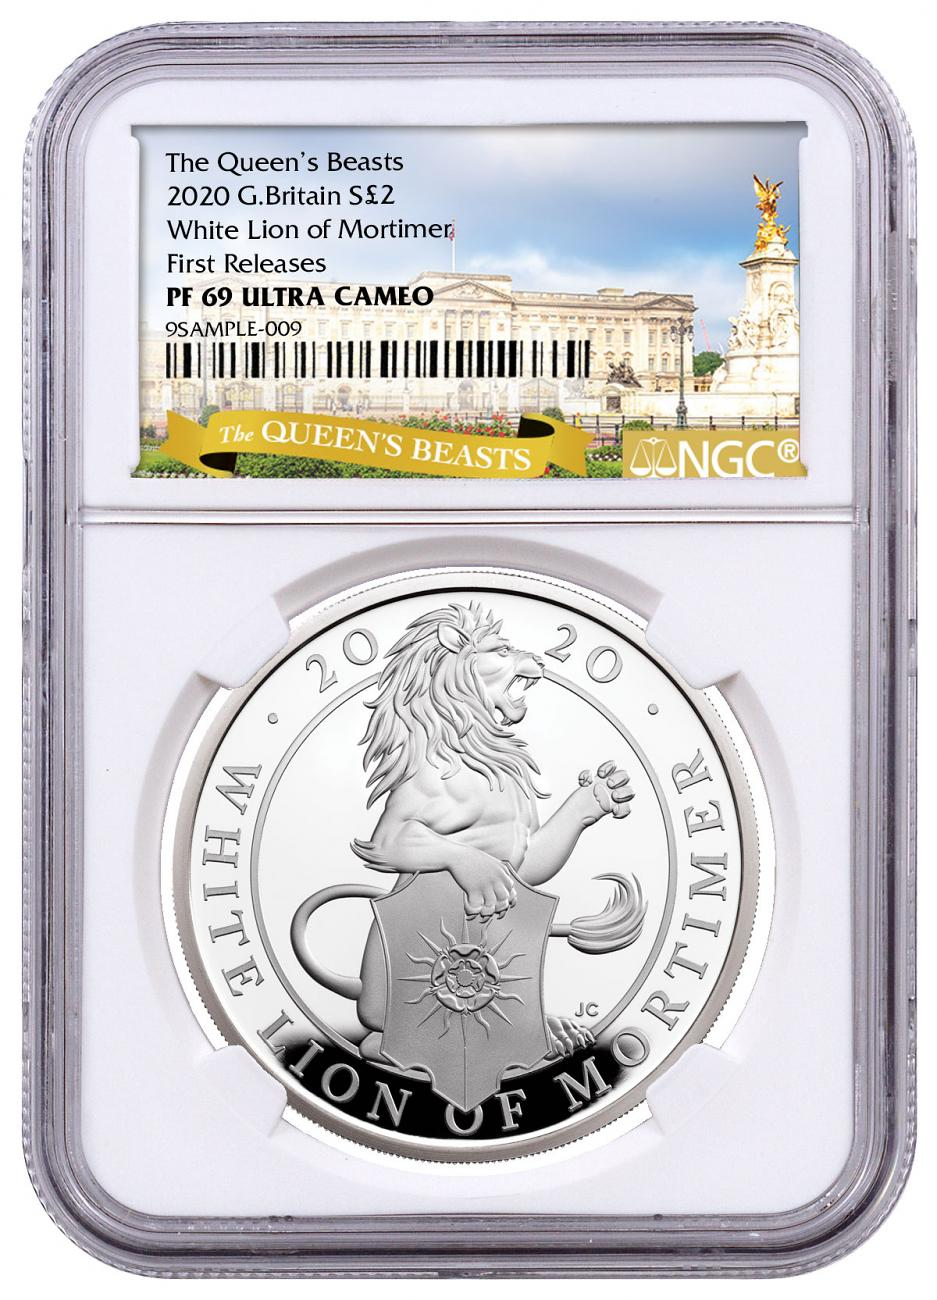 2020 Great Britain 1 oz Silver Queen's Beasts - White Lion of Mortimer Proof £2 Coin NGC PF69 UC FR Queen's Beasts Label